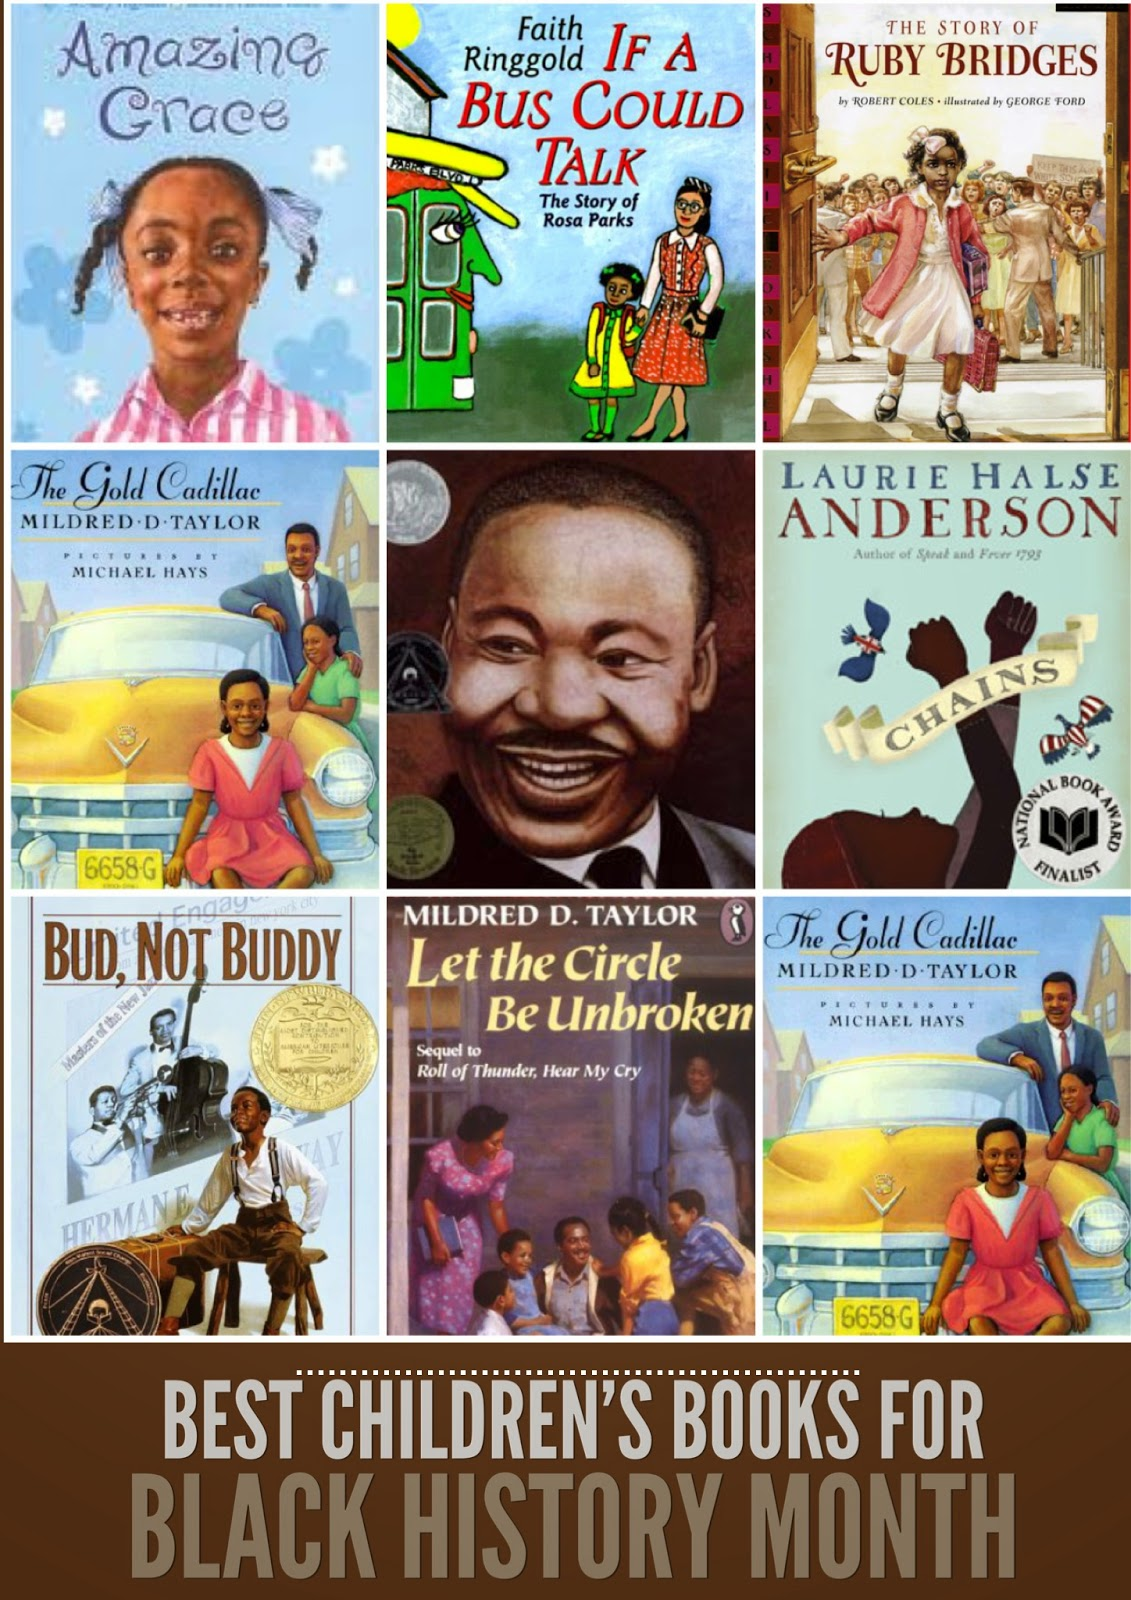 Black History Month is almost over . . . have you taken the time to talk with your kids about it? Books are such an easy way to introduce the conversation. I've rounded up a great list of books for kids of all ages that explore race and history in the United States in age-appropriate ways.